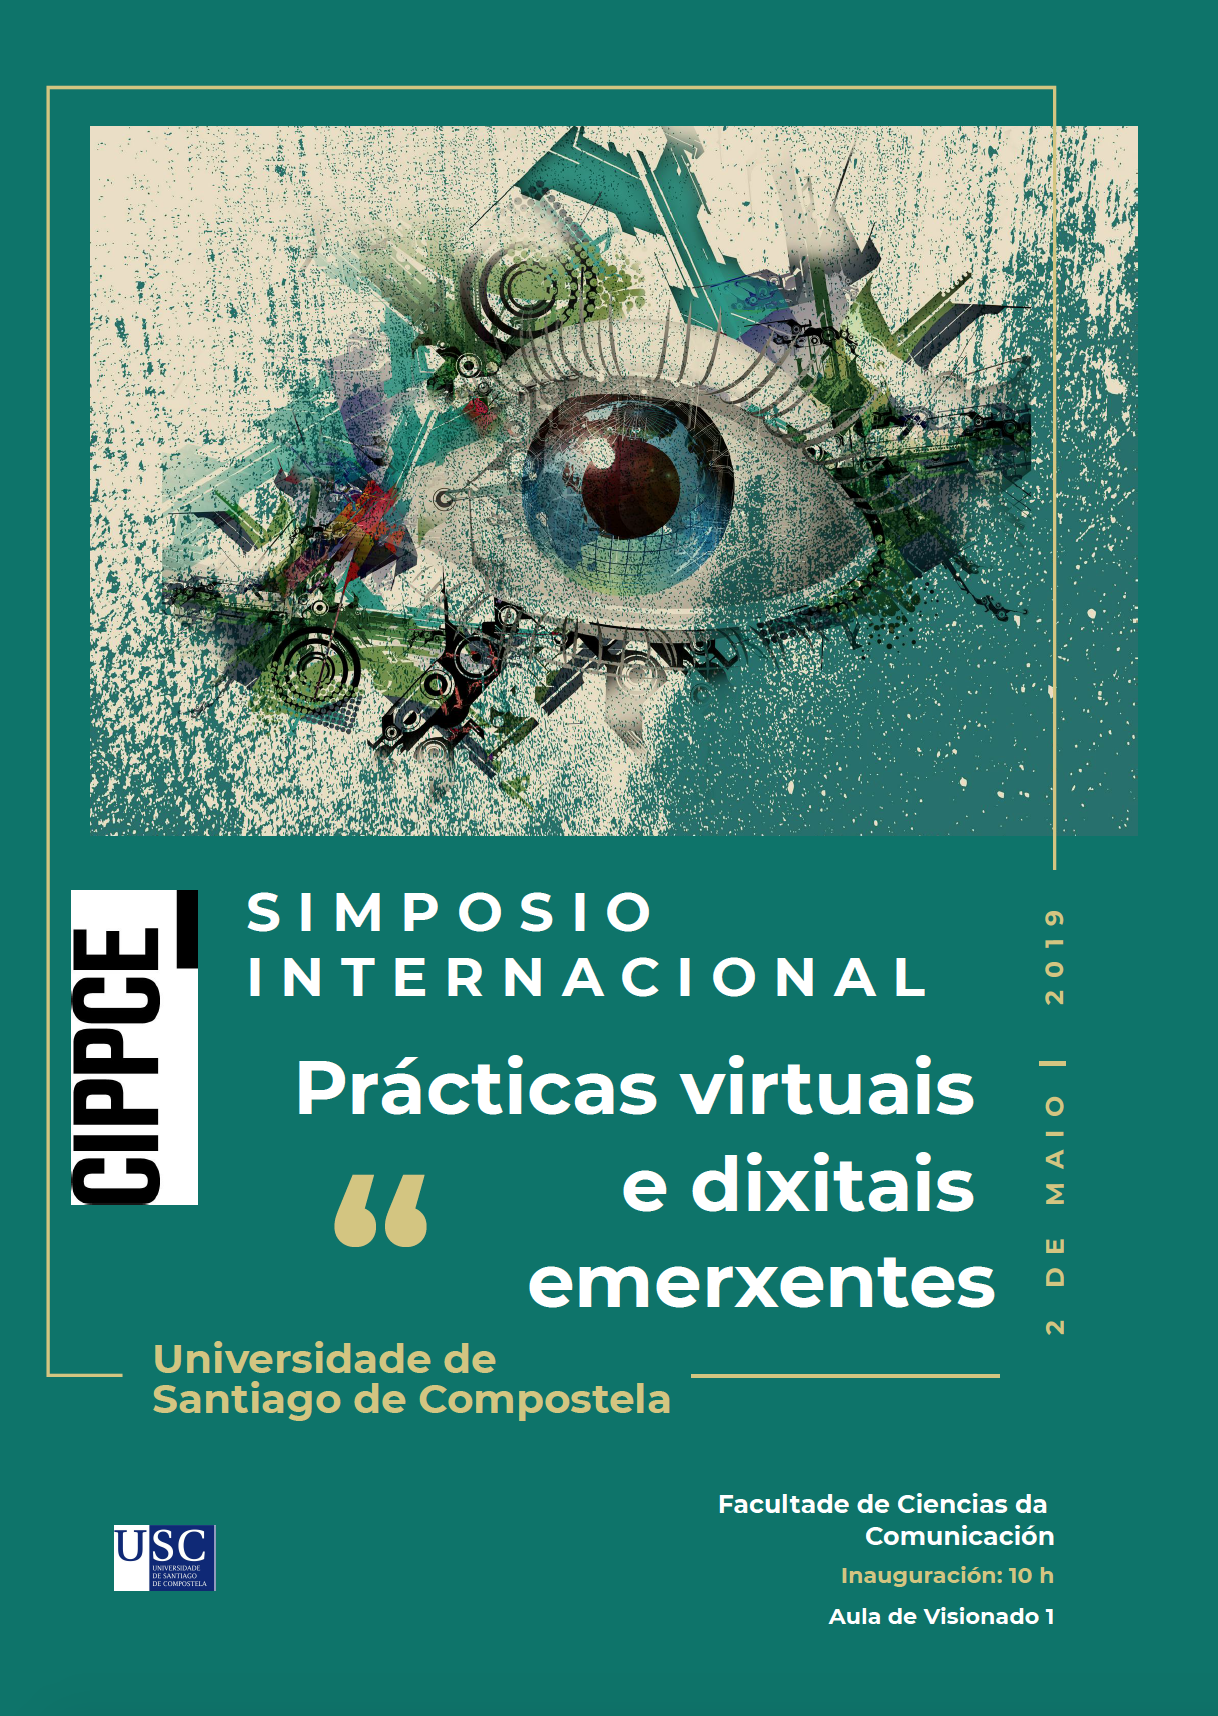 CIPPCE International Symposium 2019